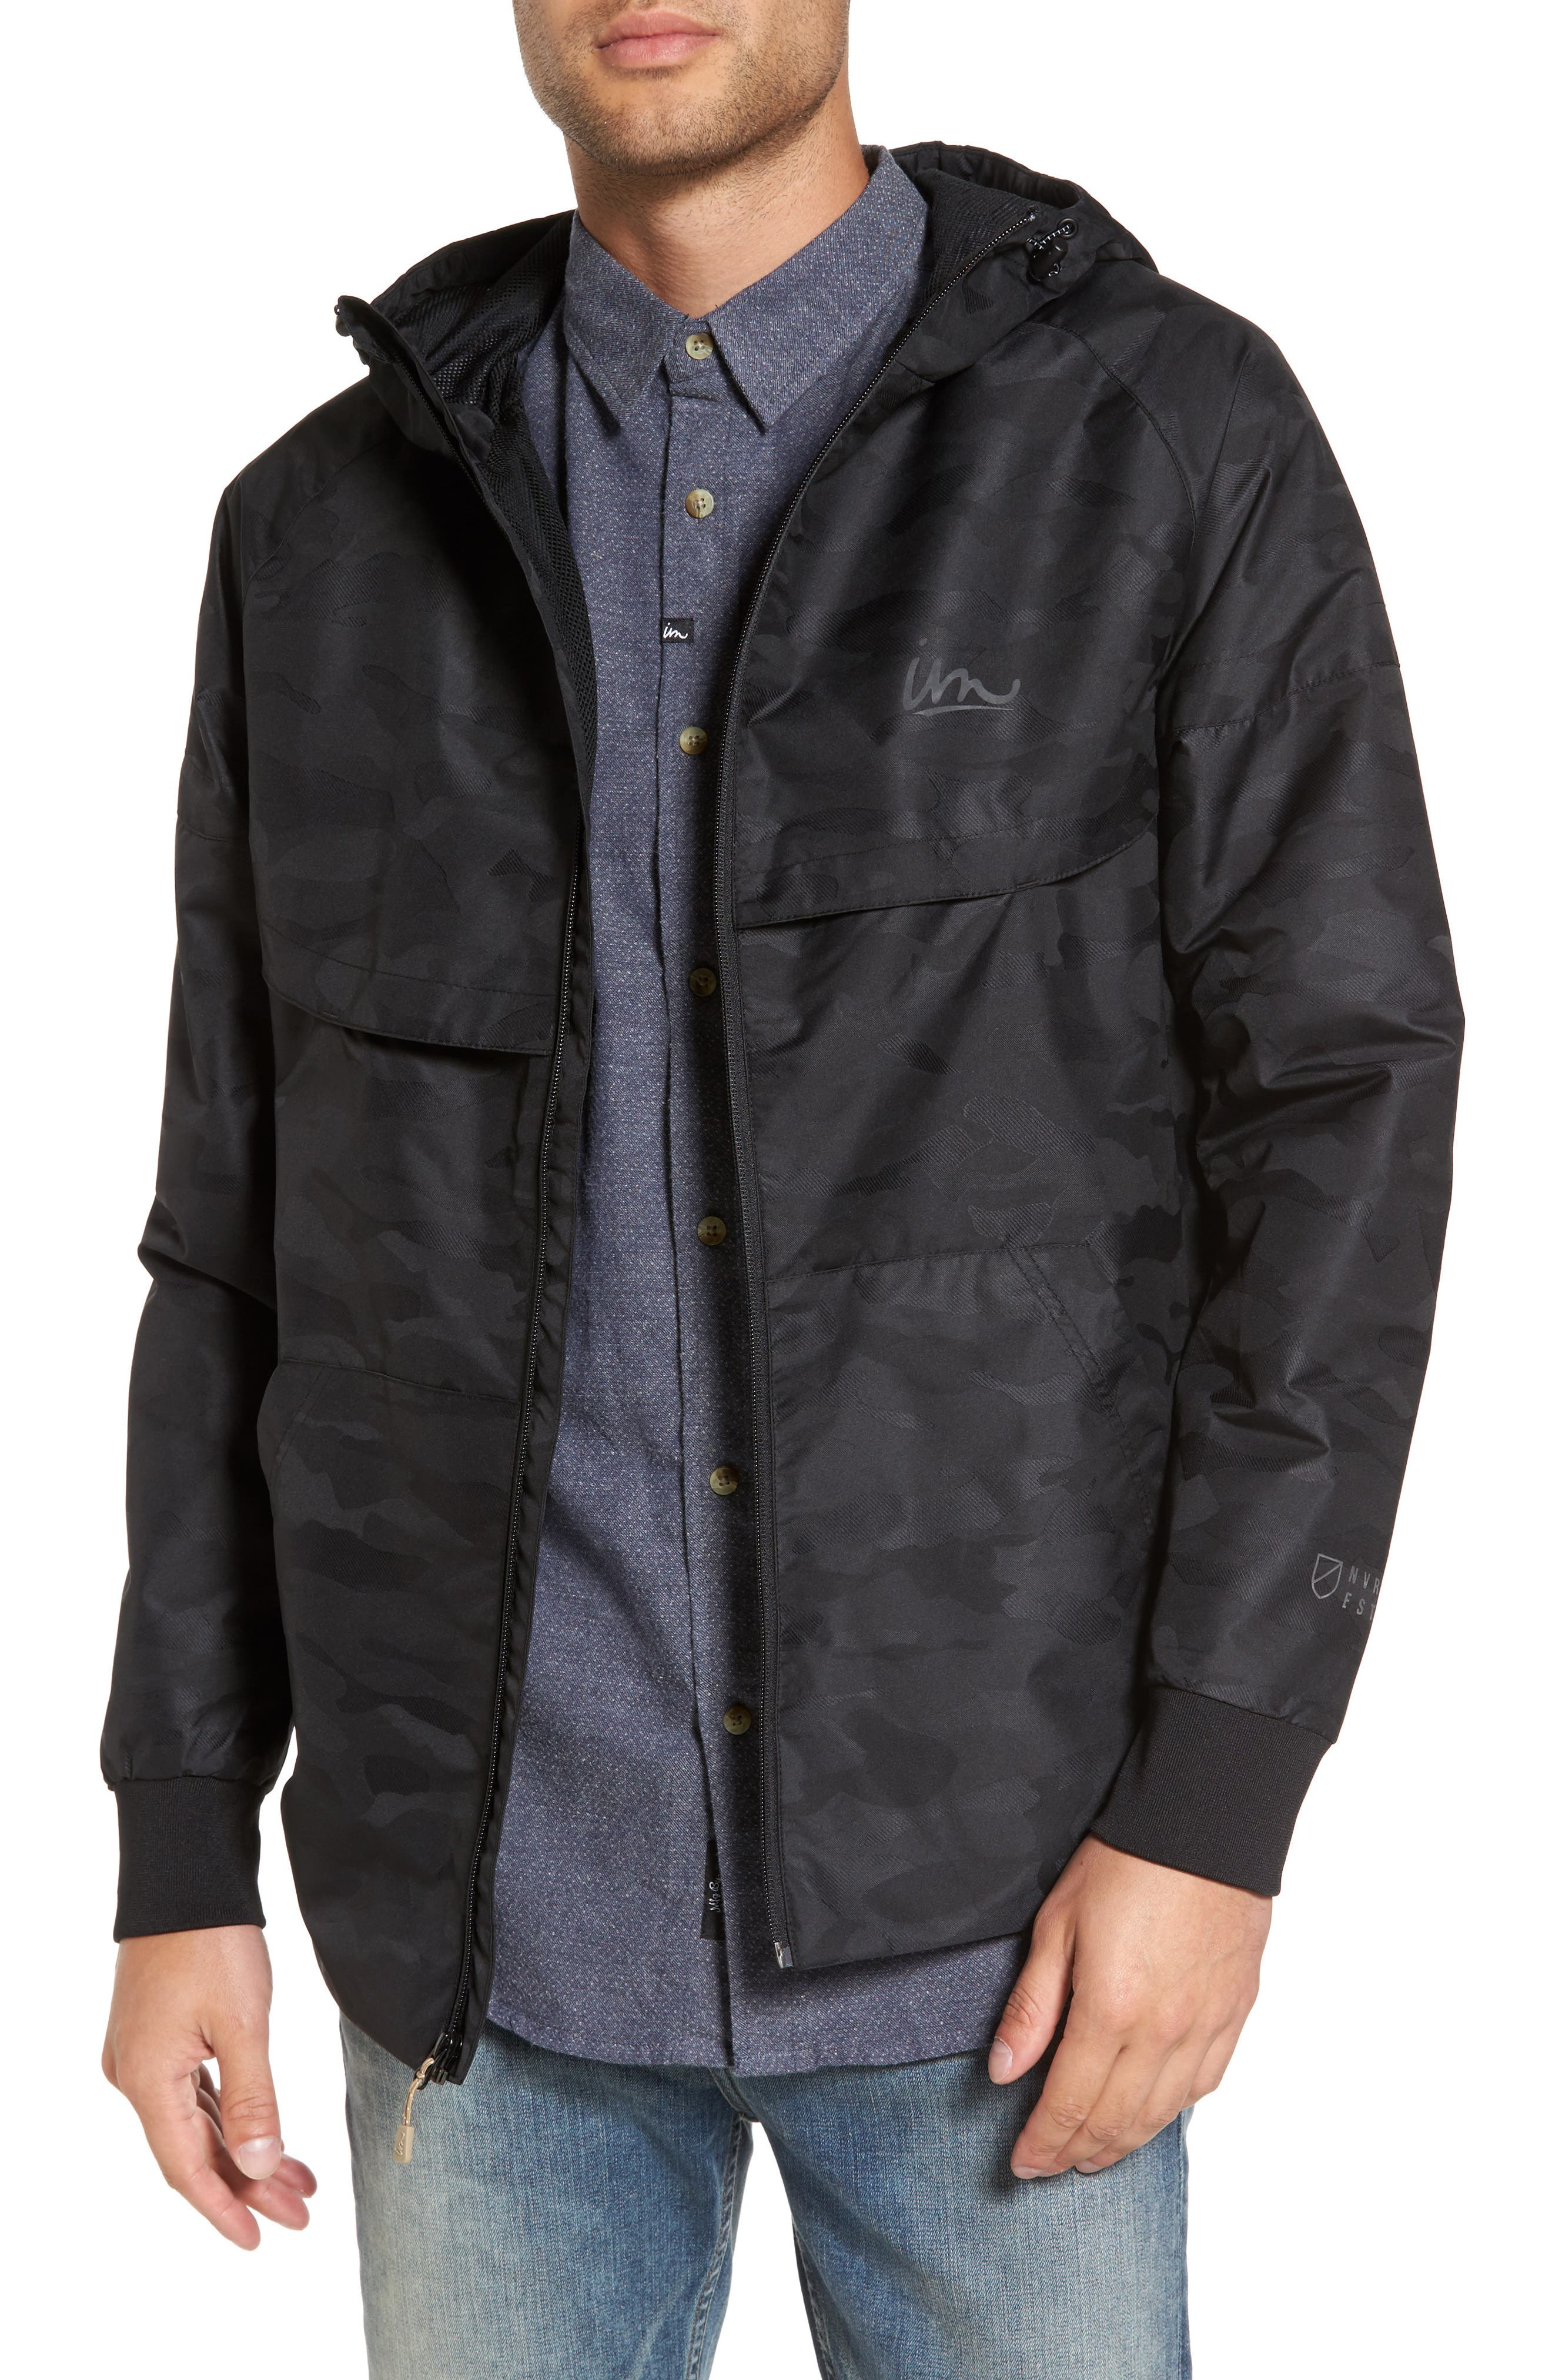 Larter Breaker Jacket,                         Main,                         color, Black Camo